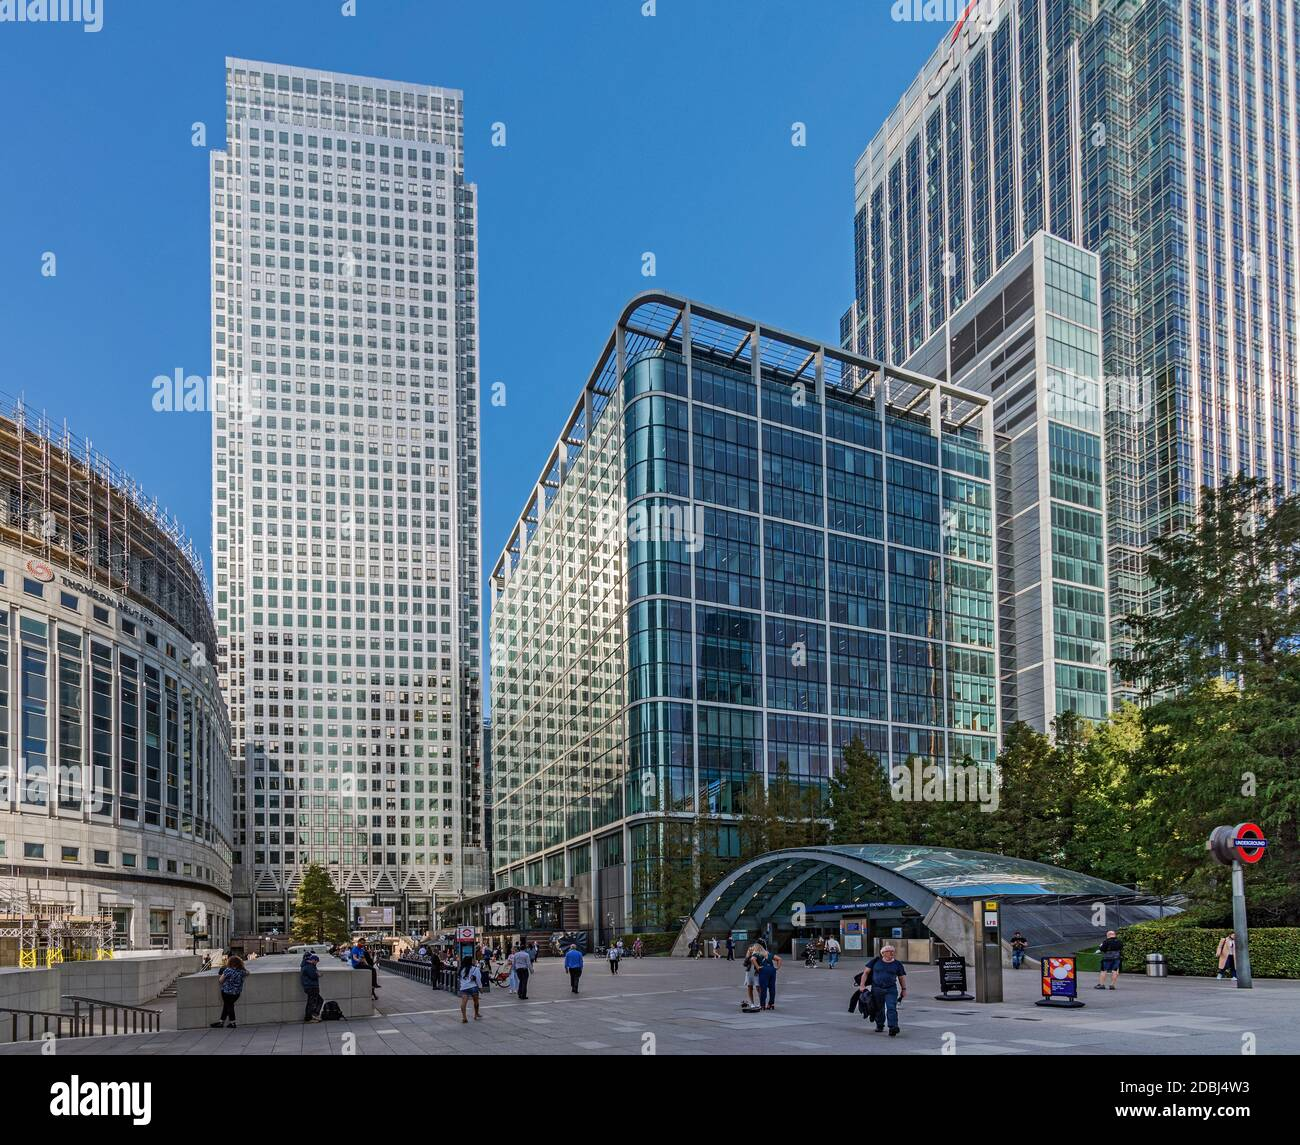 I Canada Square, Reuter's Plaza and the entrance to Canary Wharf Station, Docklands, London, England, United Kingdom, Europe Stock Photo